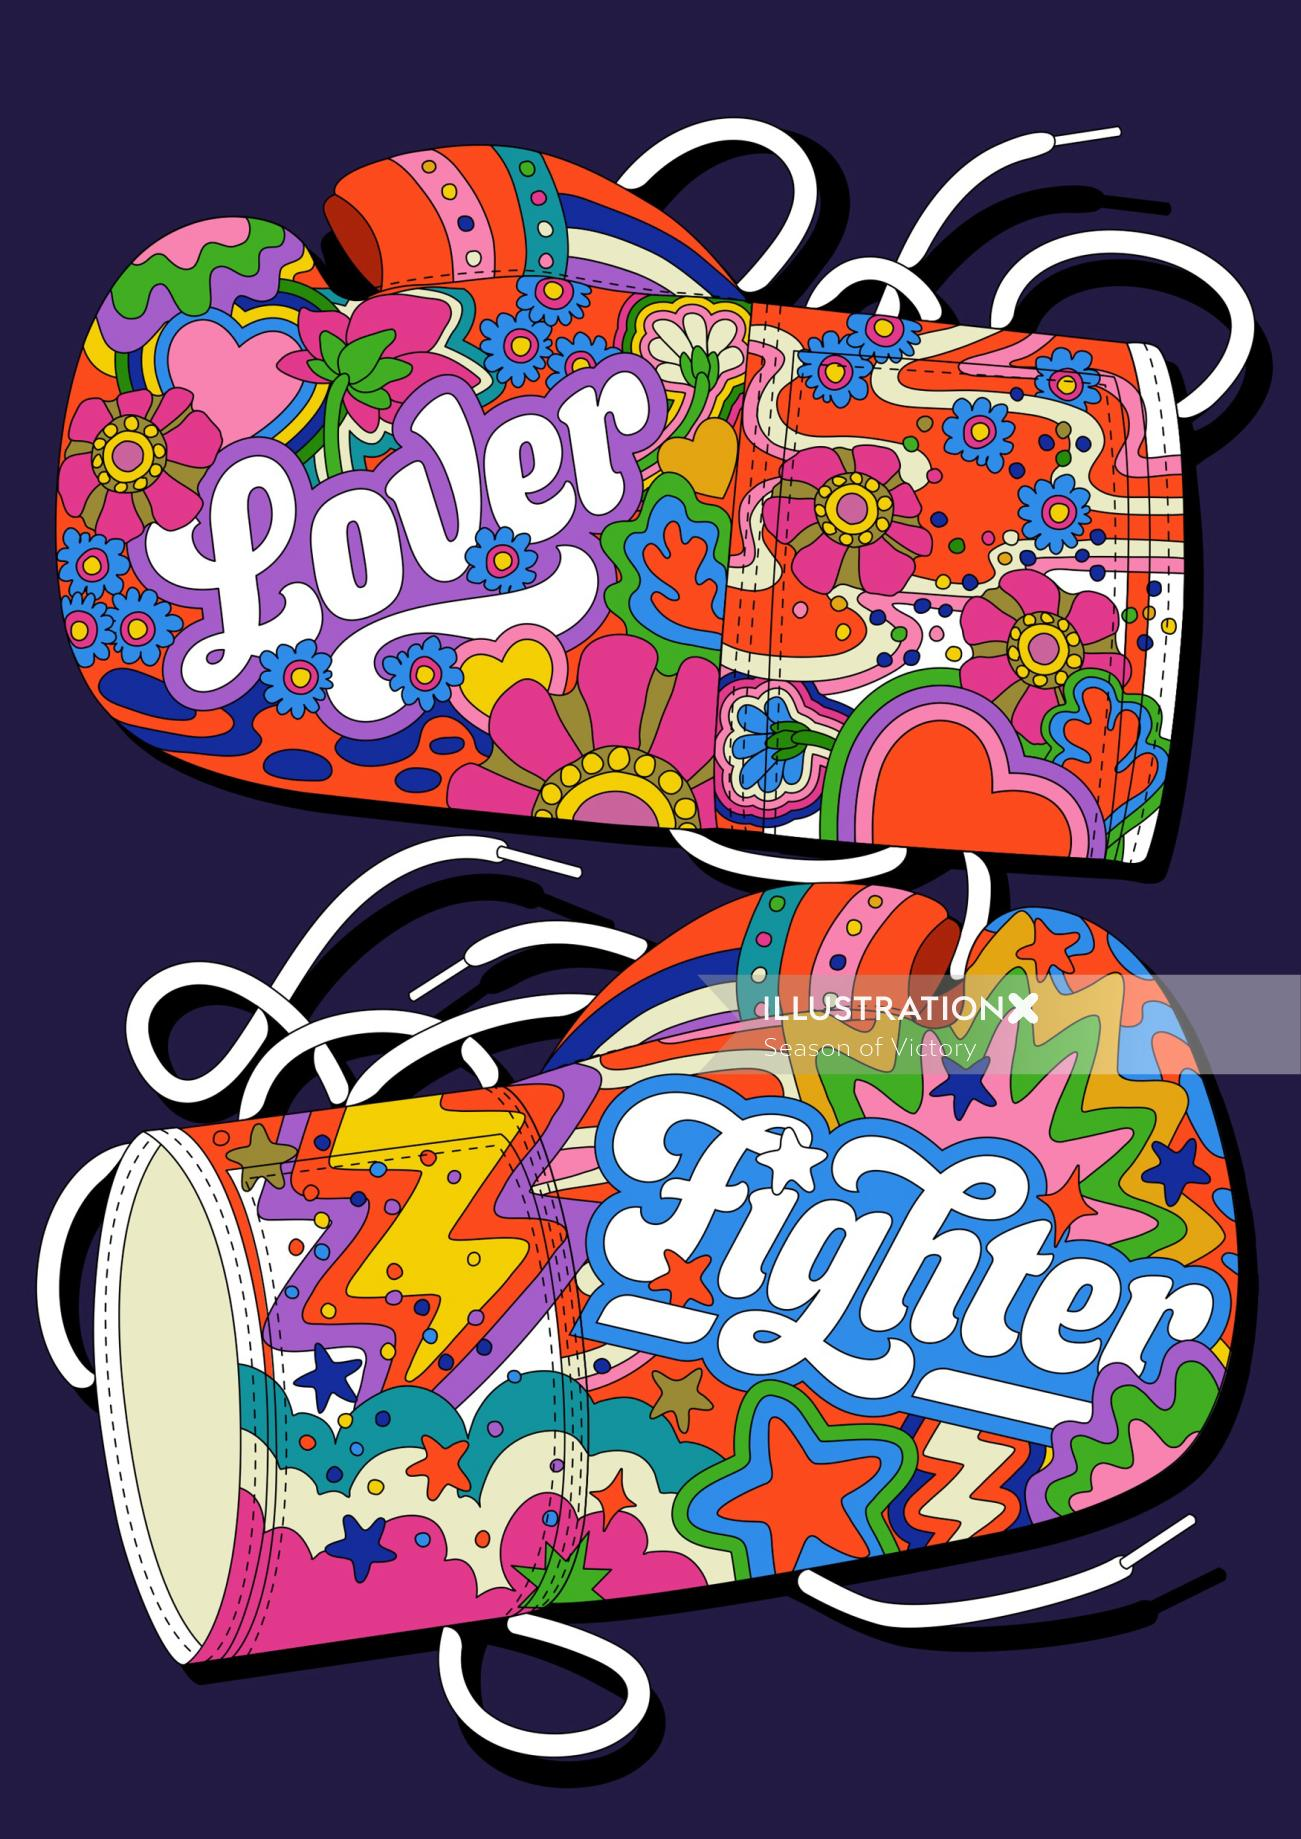 selfcare, selflove, mentalhealth, health, colorful, colourful, lover, fighter, pattern, love, packag